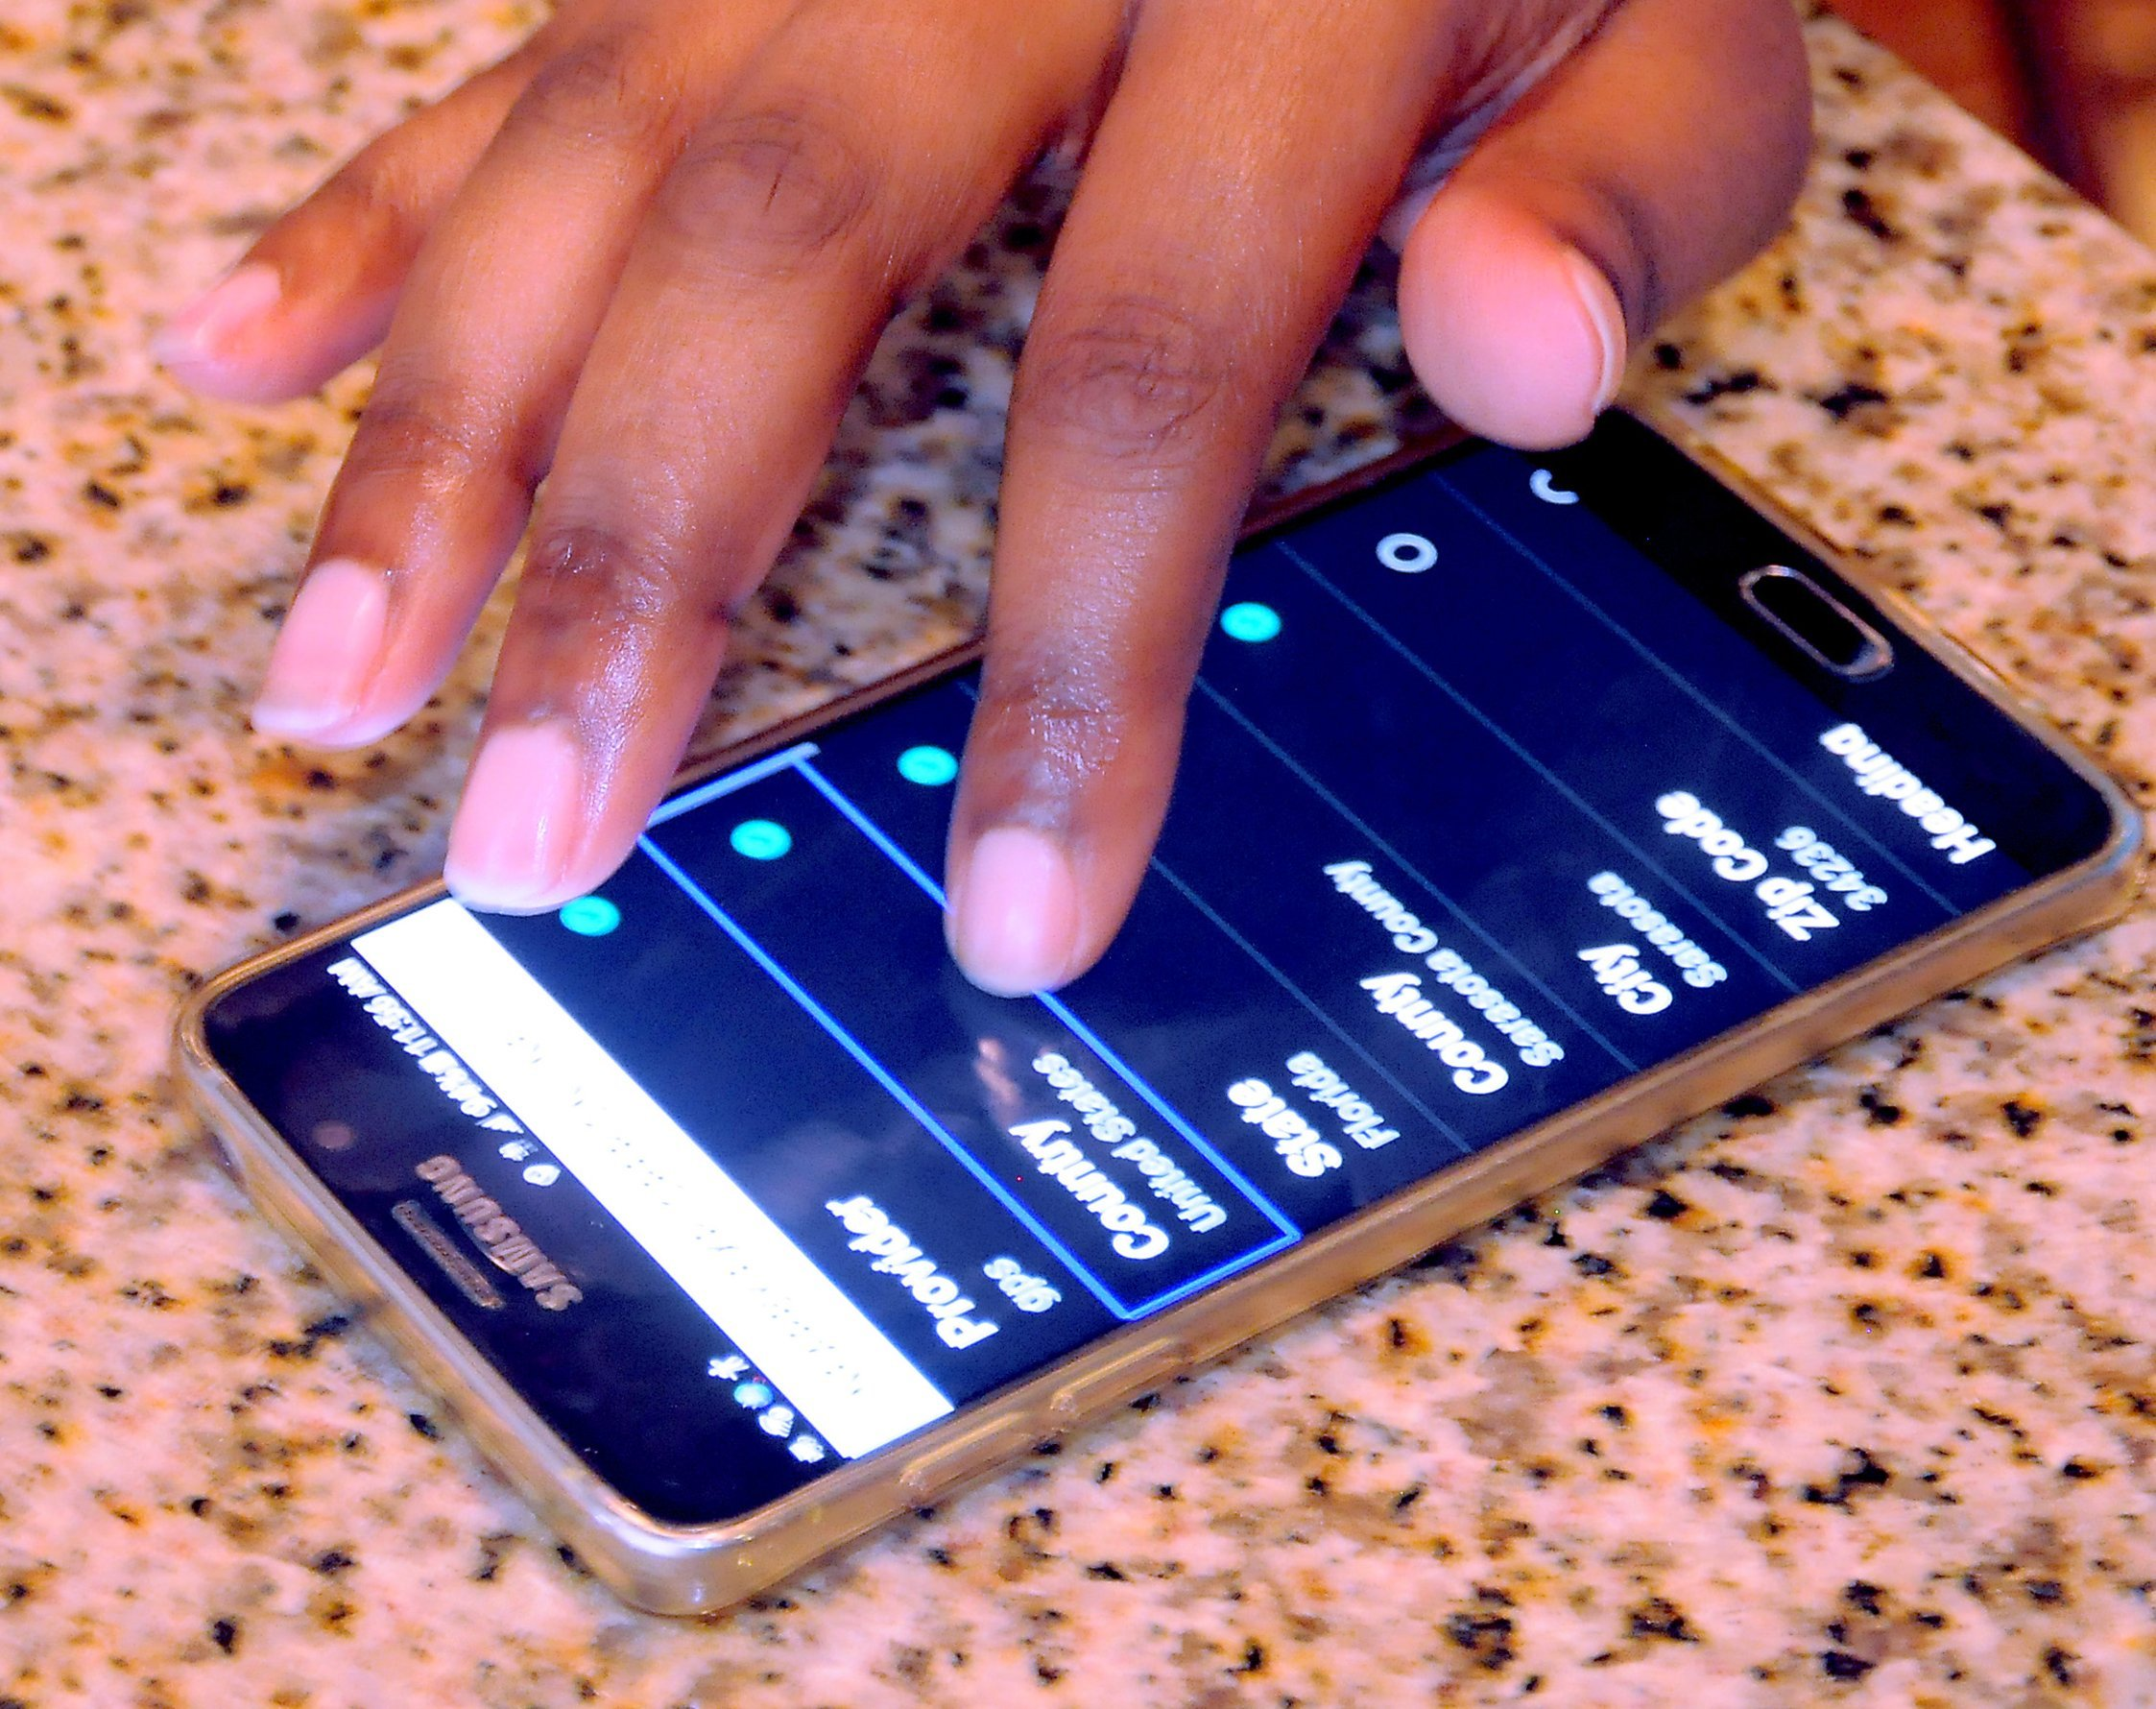 Closeup of user interacting with mobile device